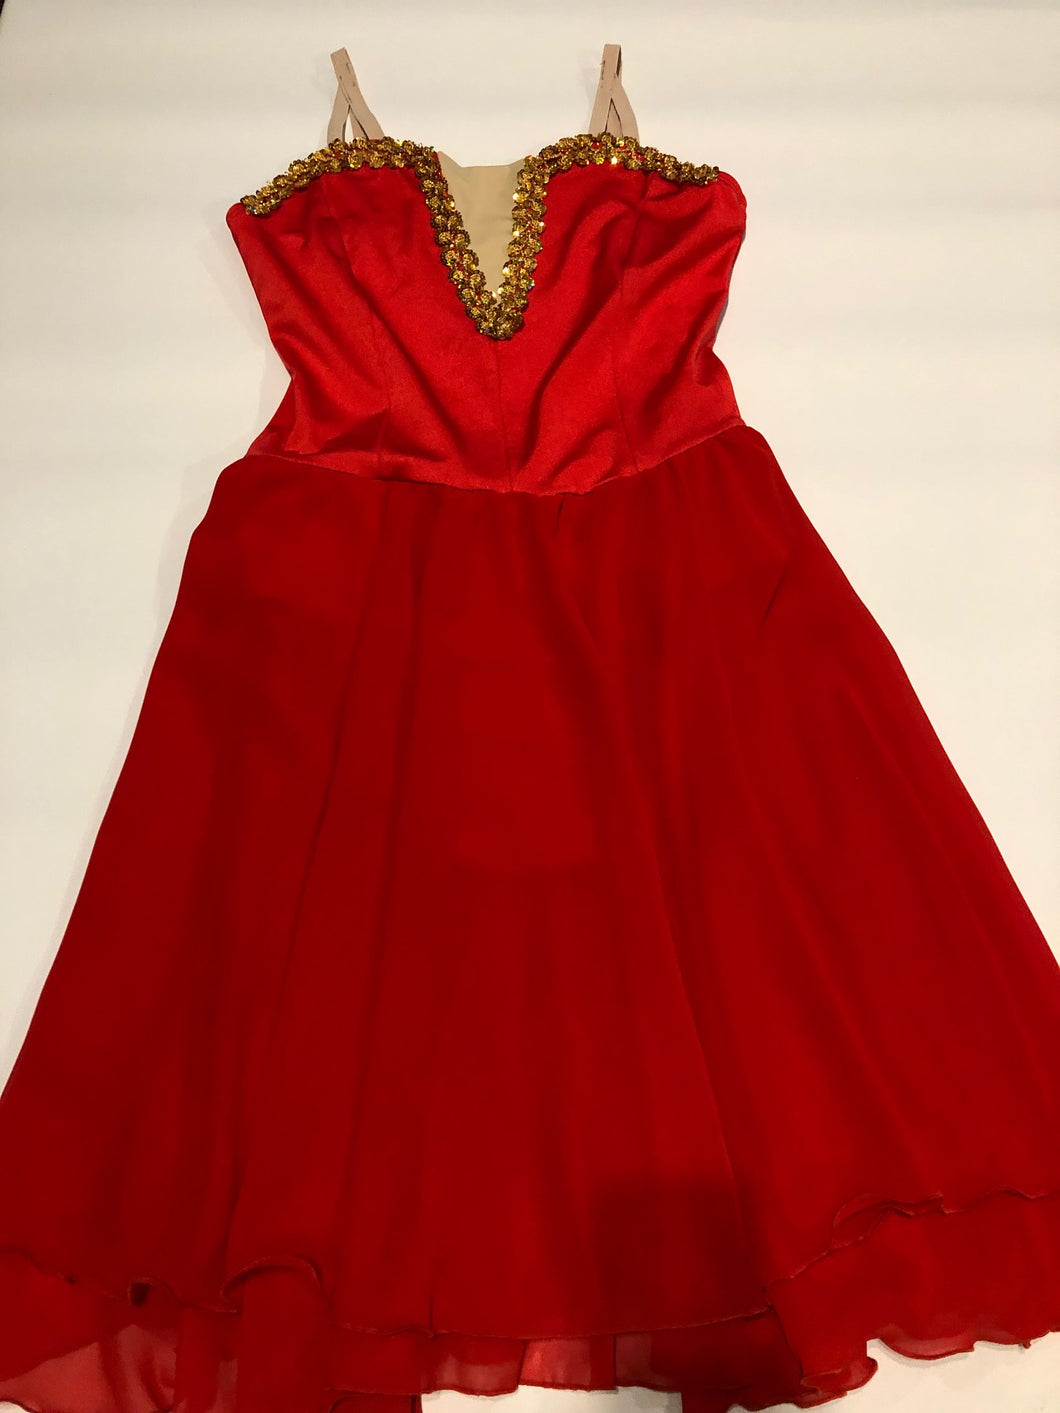 Adults 12 - Red Lyrical Dress - In Stock